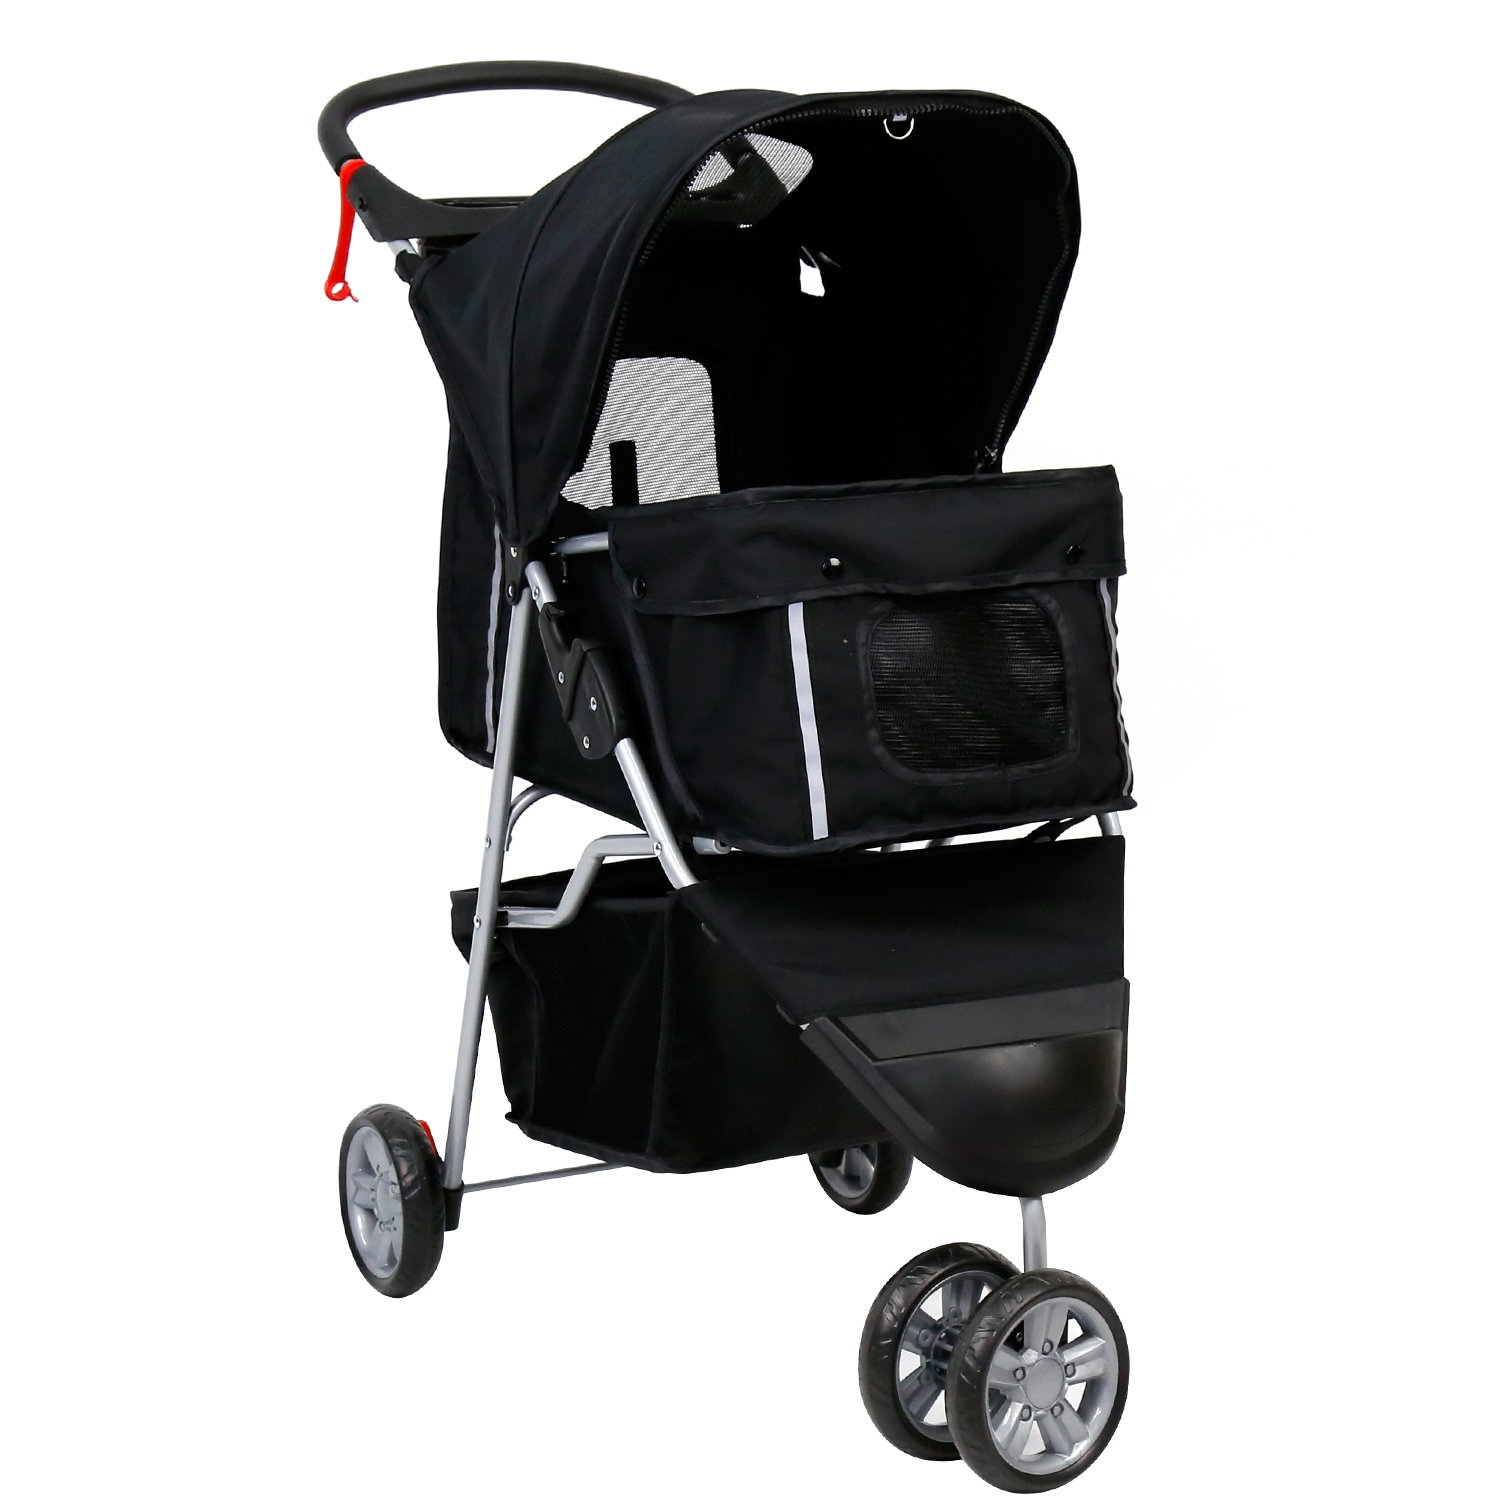 Peach Tree Three Wheel Pet Stroller, for Cat, Dog and More, Foldable Carrier Strolling Cart (Black)